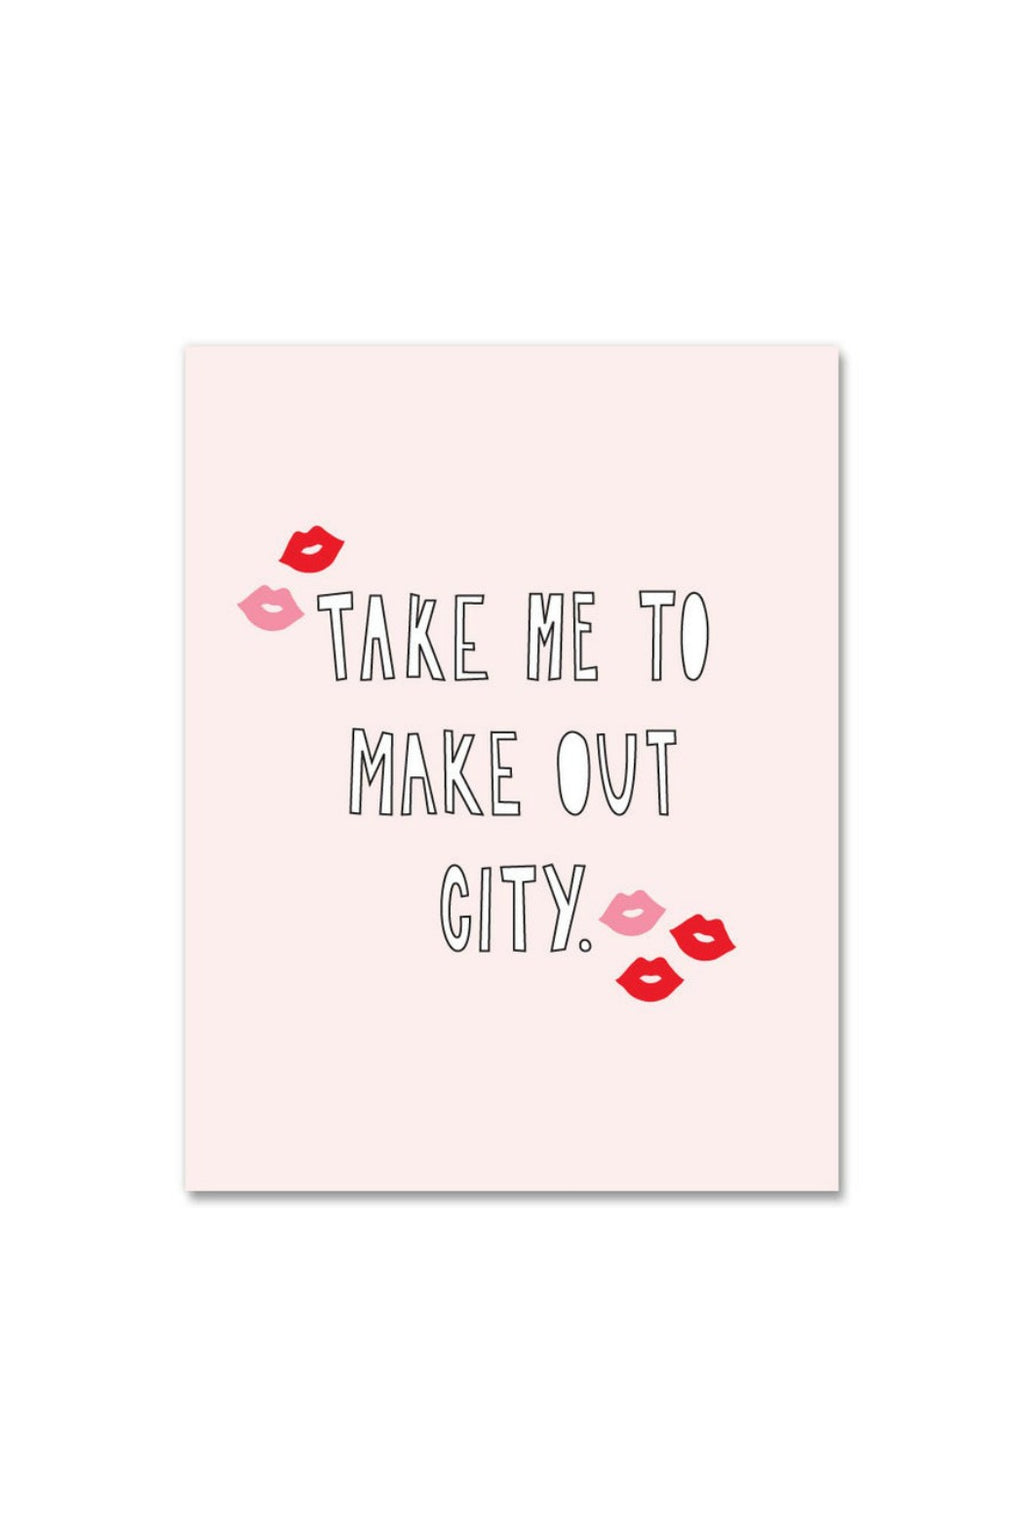 Near Modern Disaster Greeting Card - Make Out City